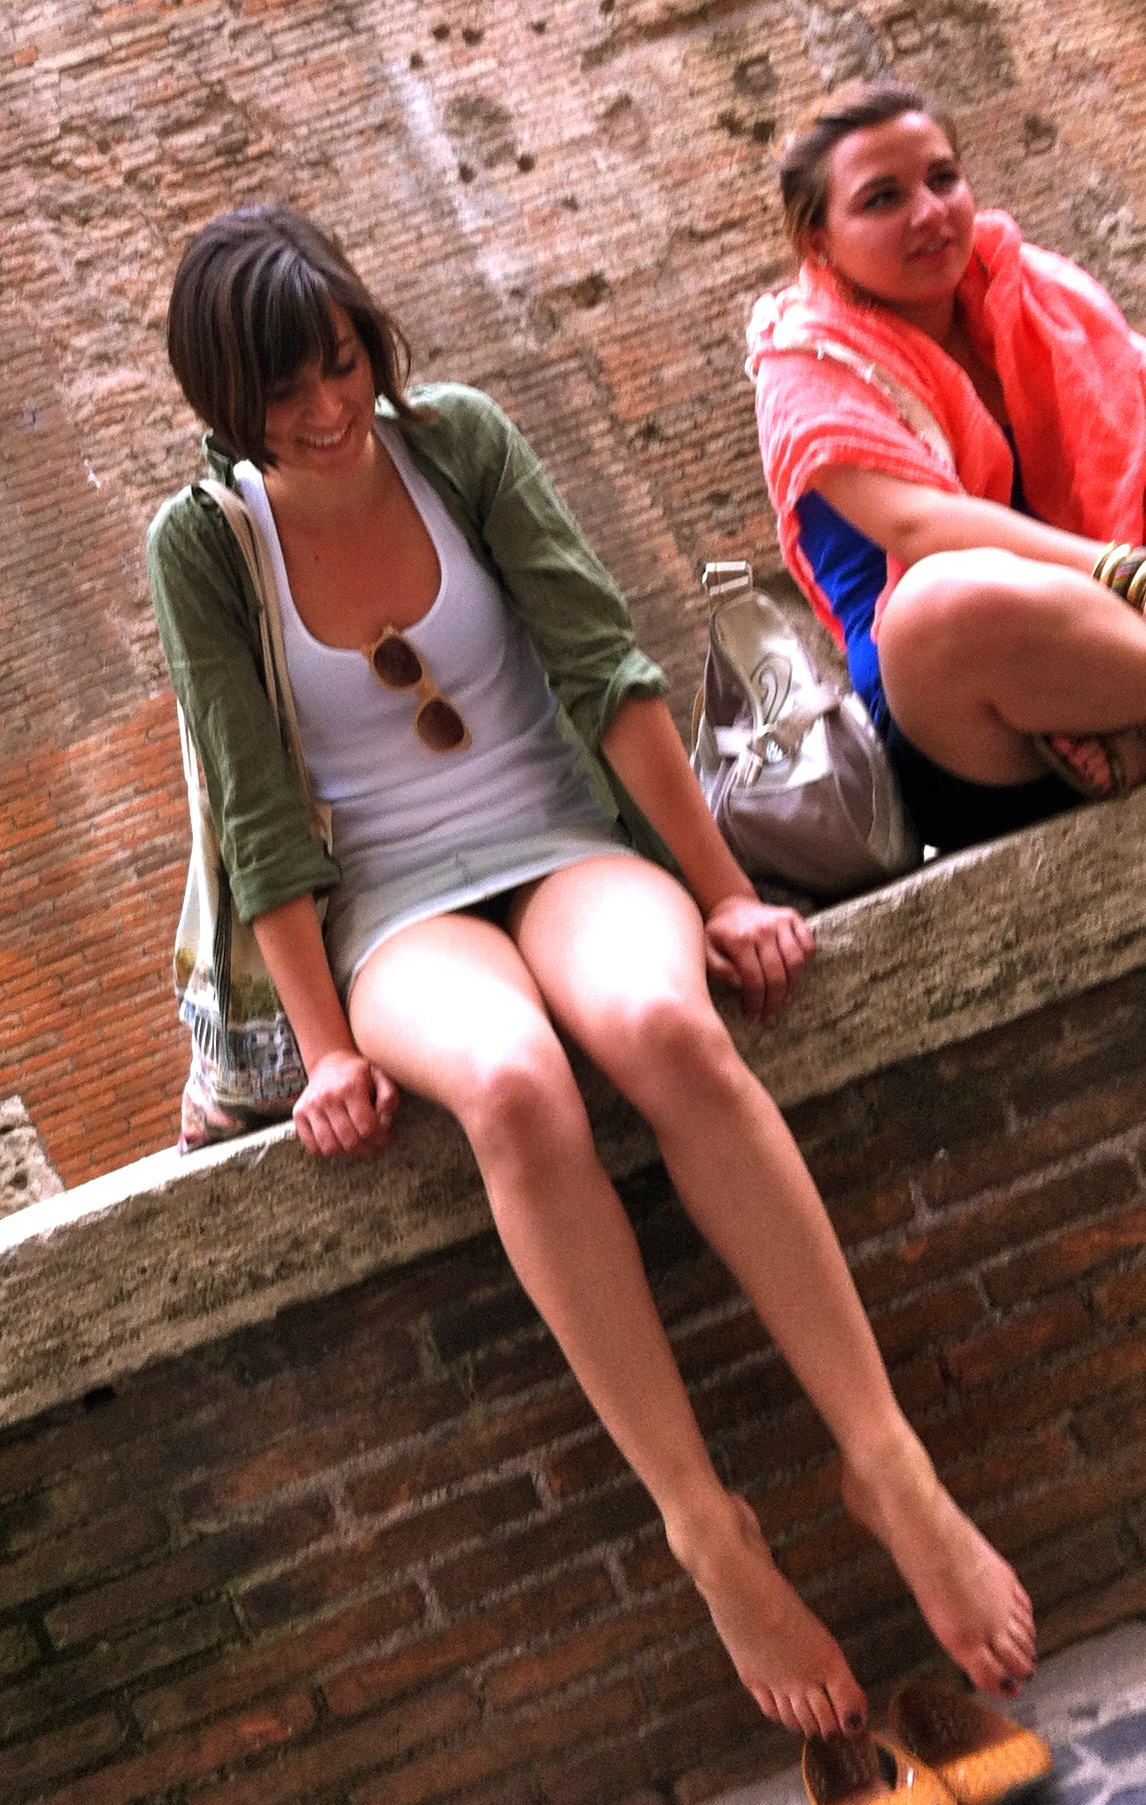 Necessary amateur upskirt cam recommend you